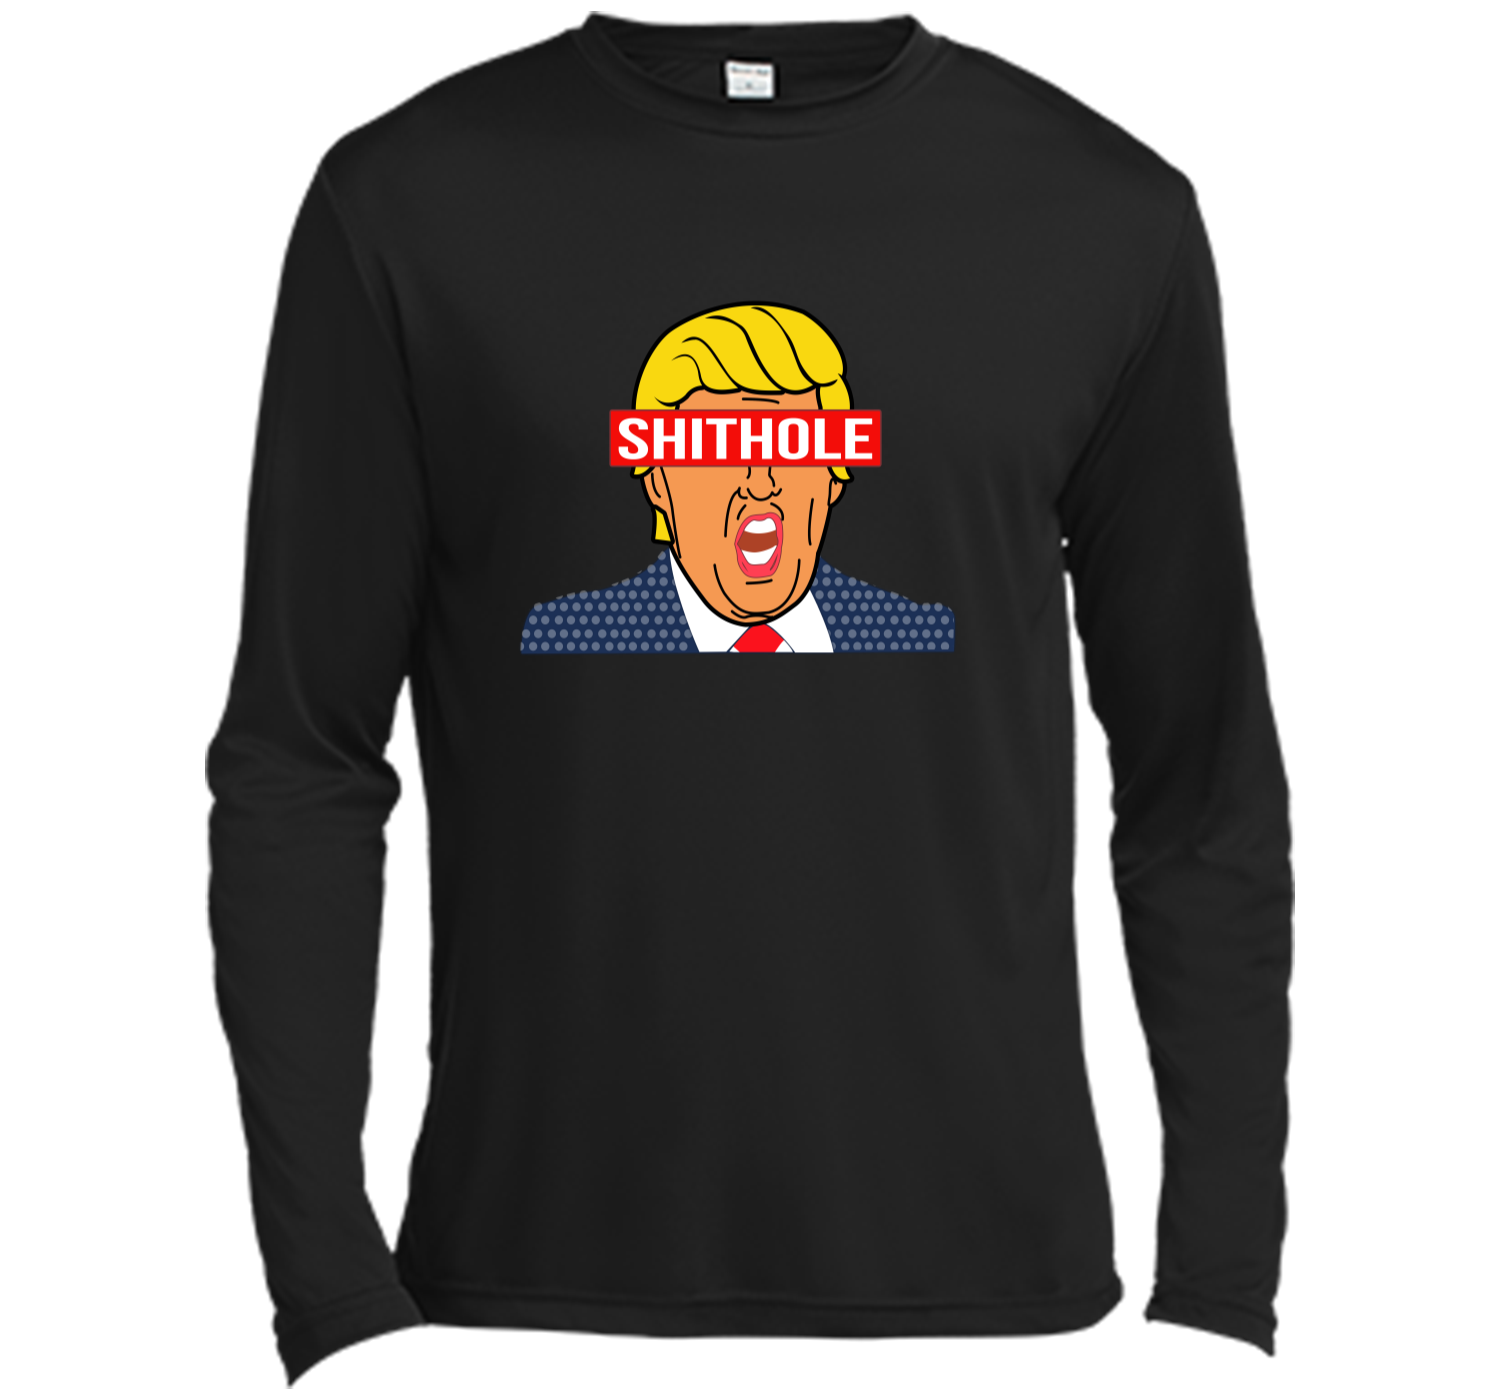 1f0c7cbce Trump Shithole president - Anti Trump tshirt Shirt Long Sleeve ...